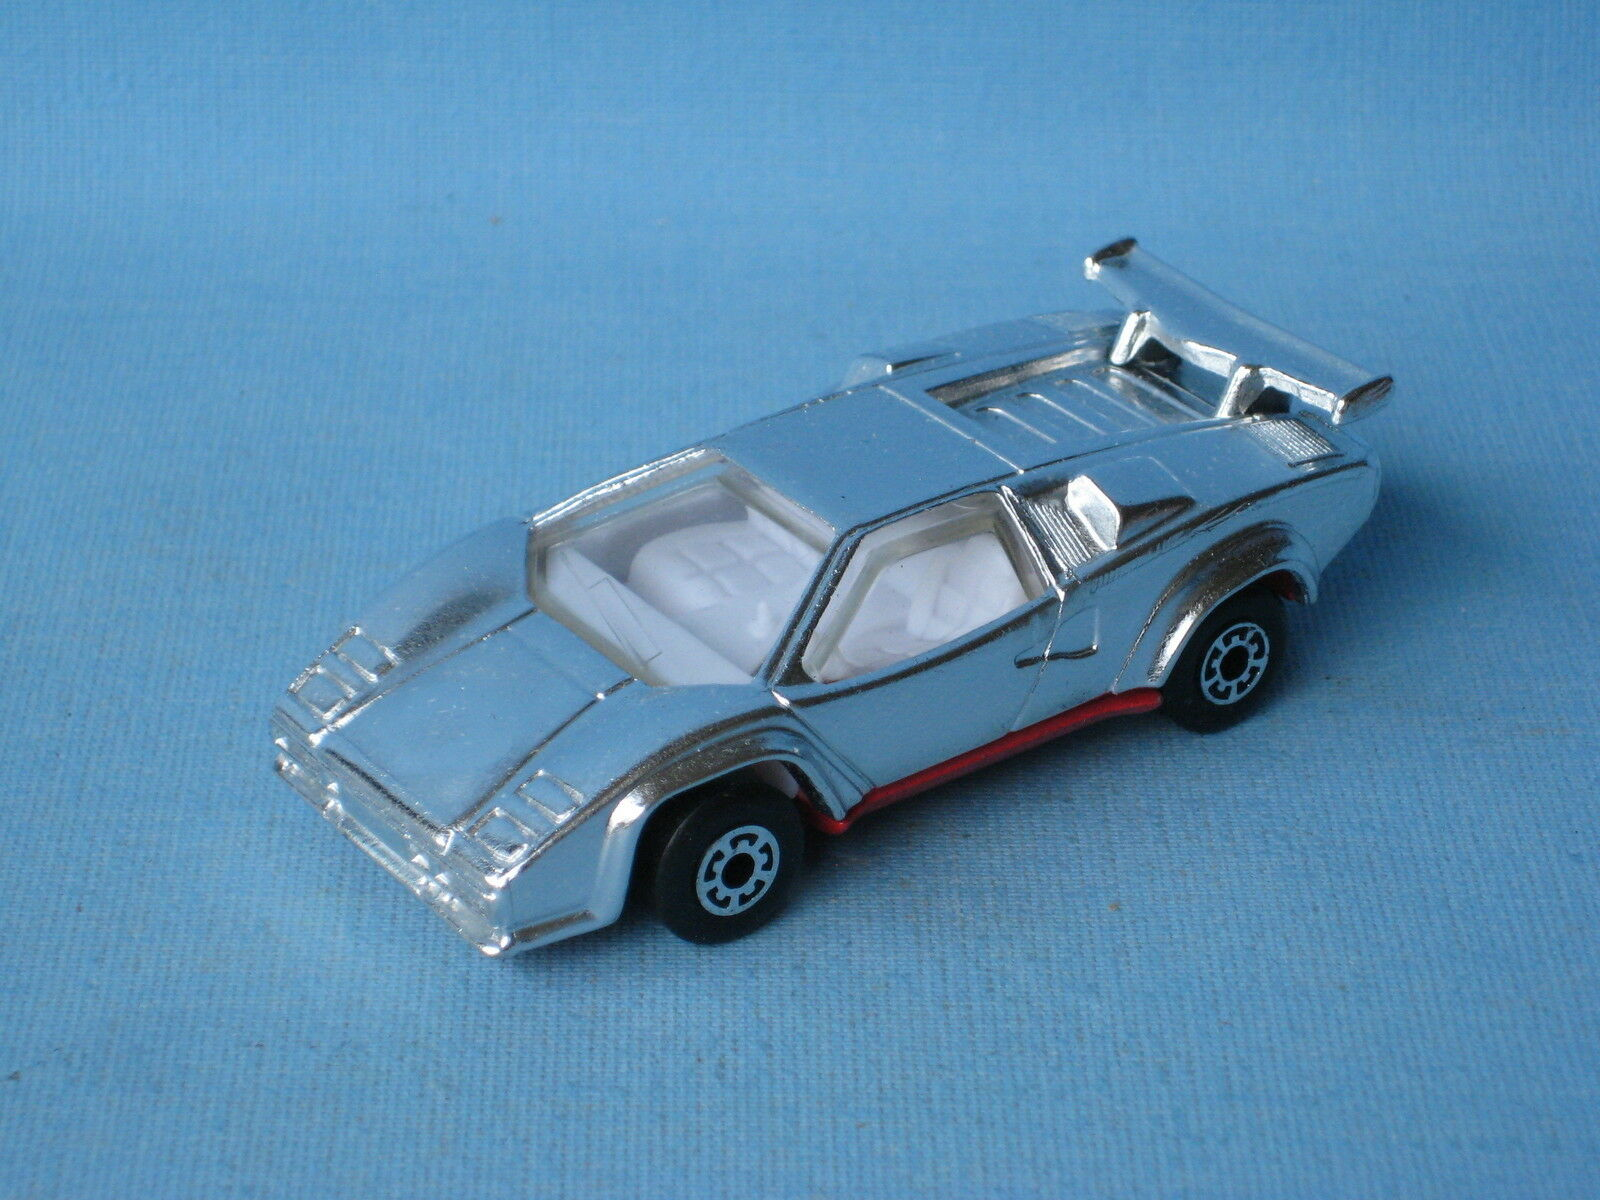 Matchbox Lamborghini Countach Unreleased Chrome Version Pre-Pro 75mm